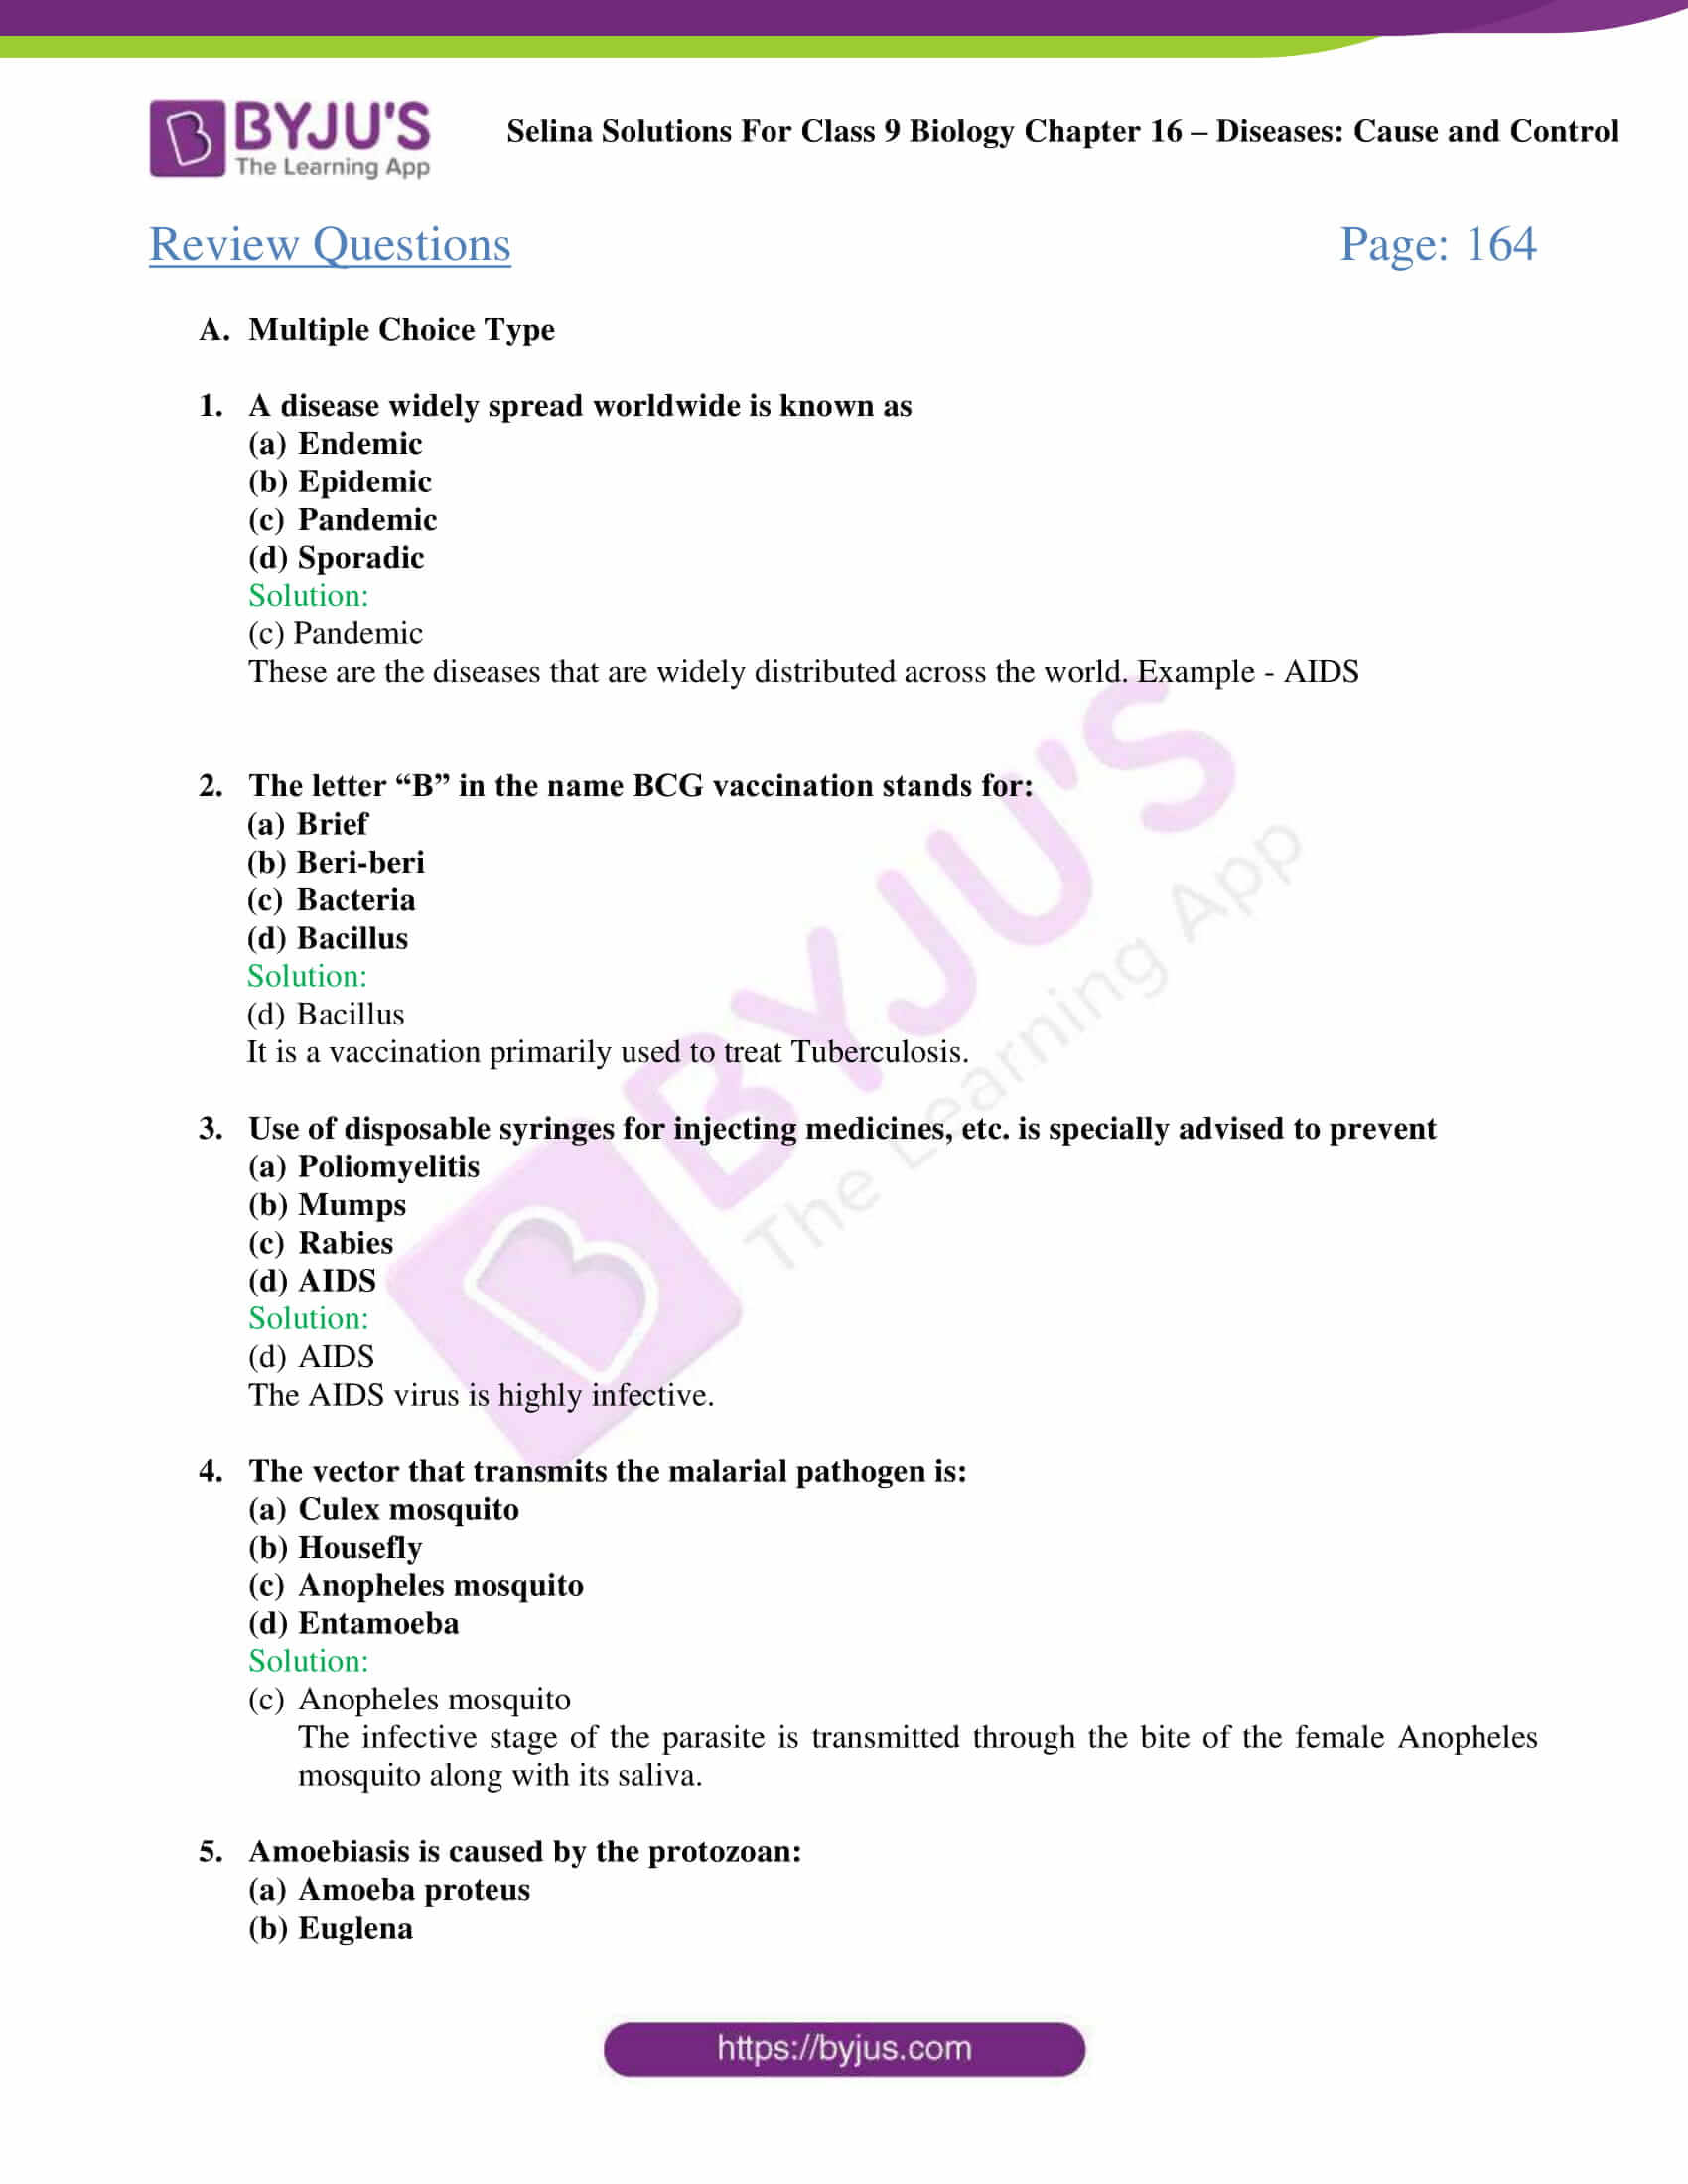 Selina Solutions Class 9 Biology Chapter 16 part 2